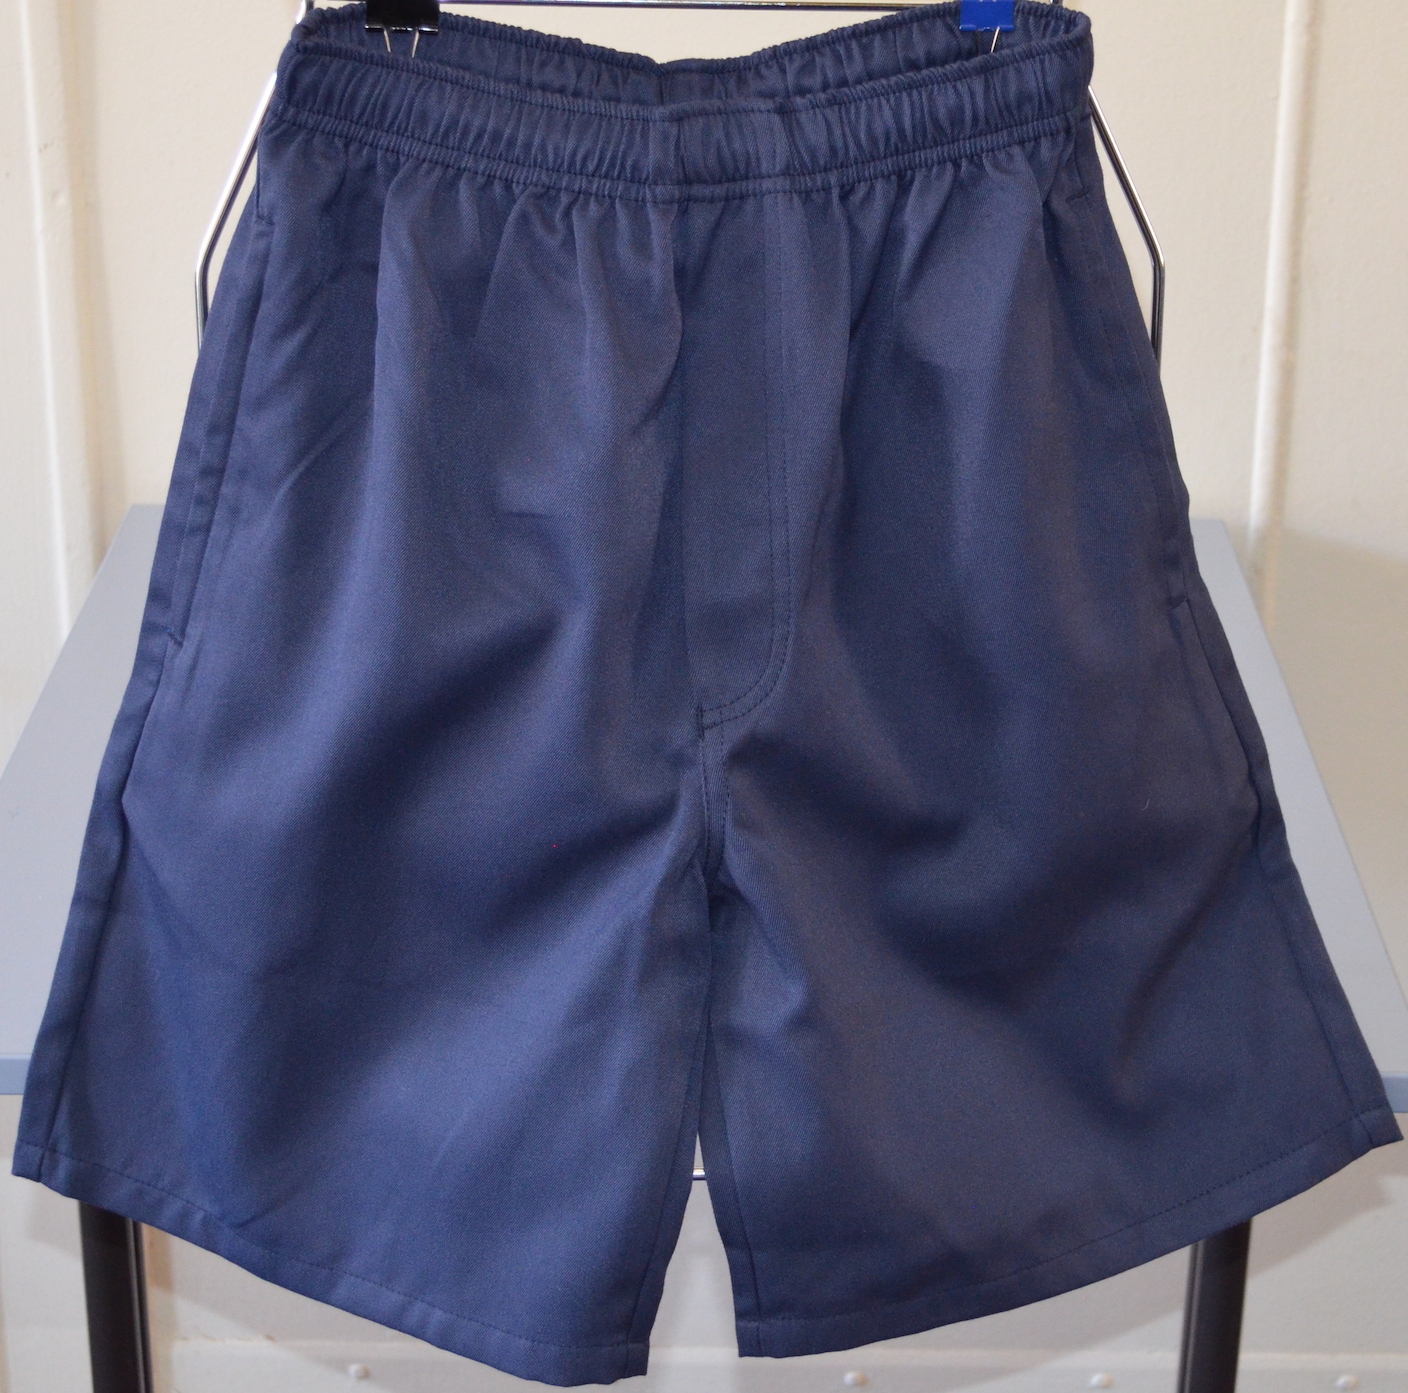 Junior boy's shorts